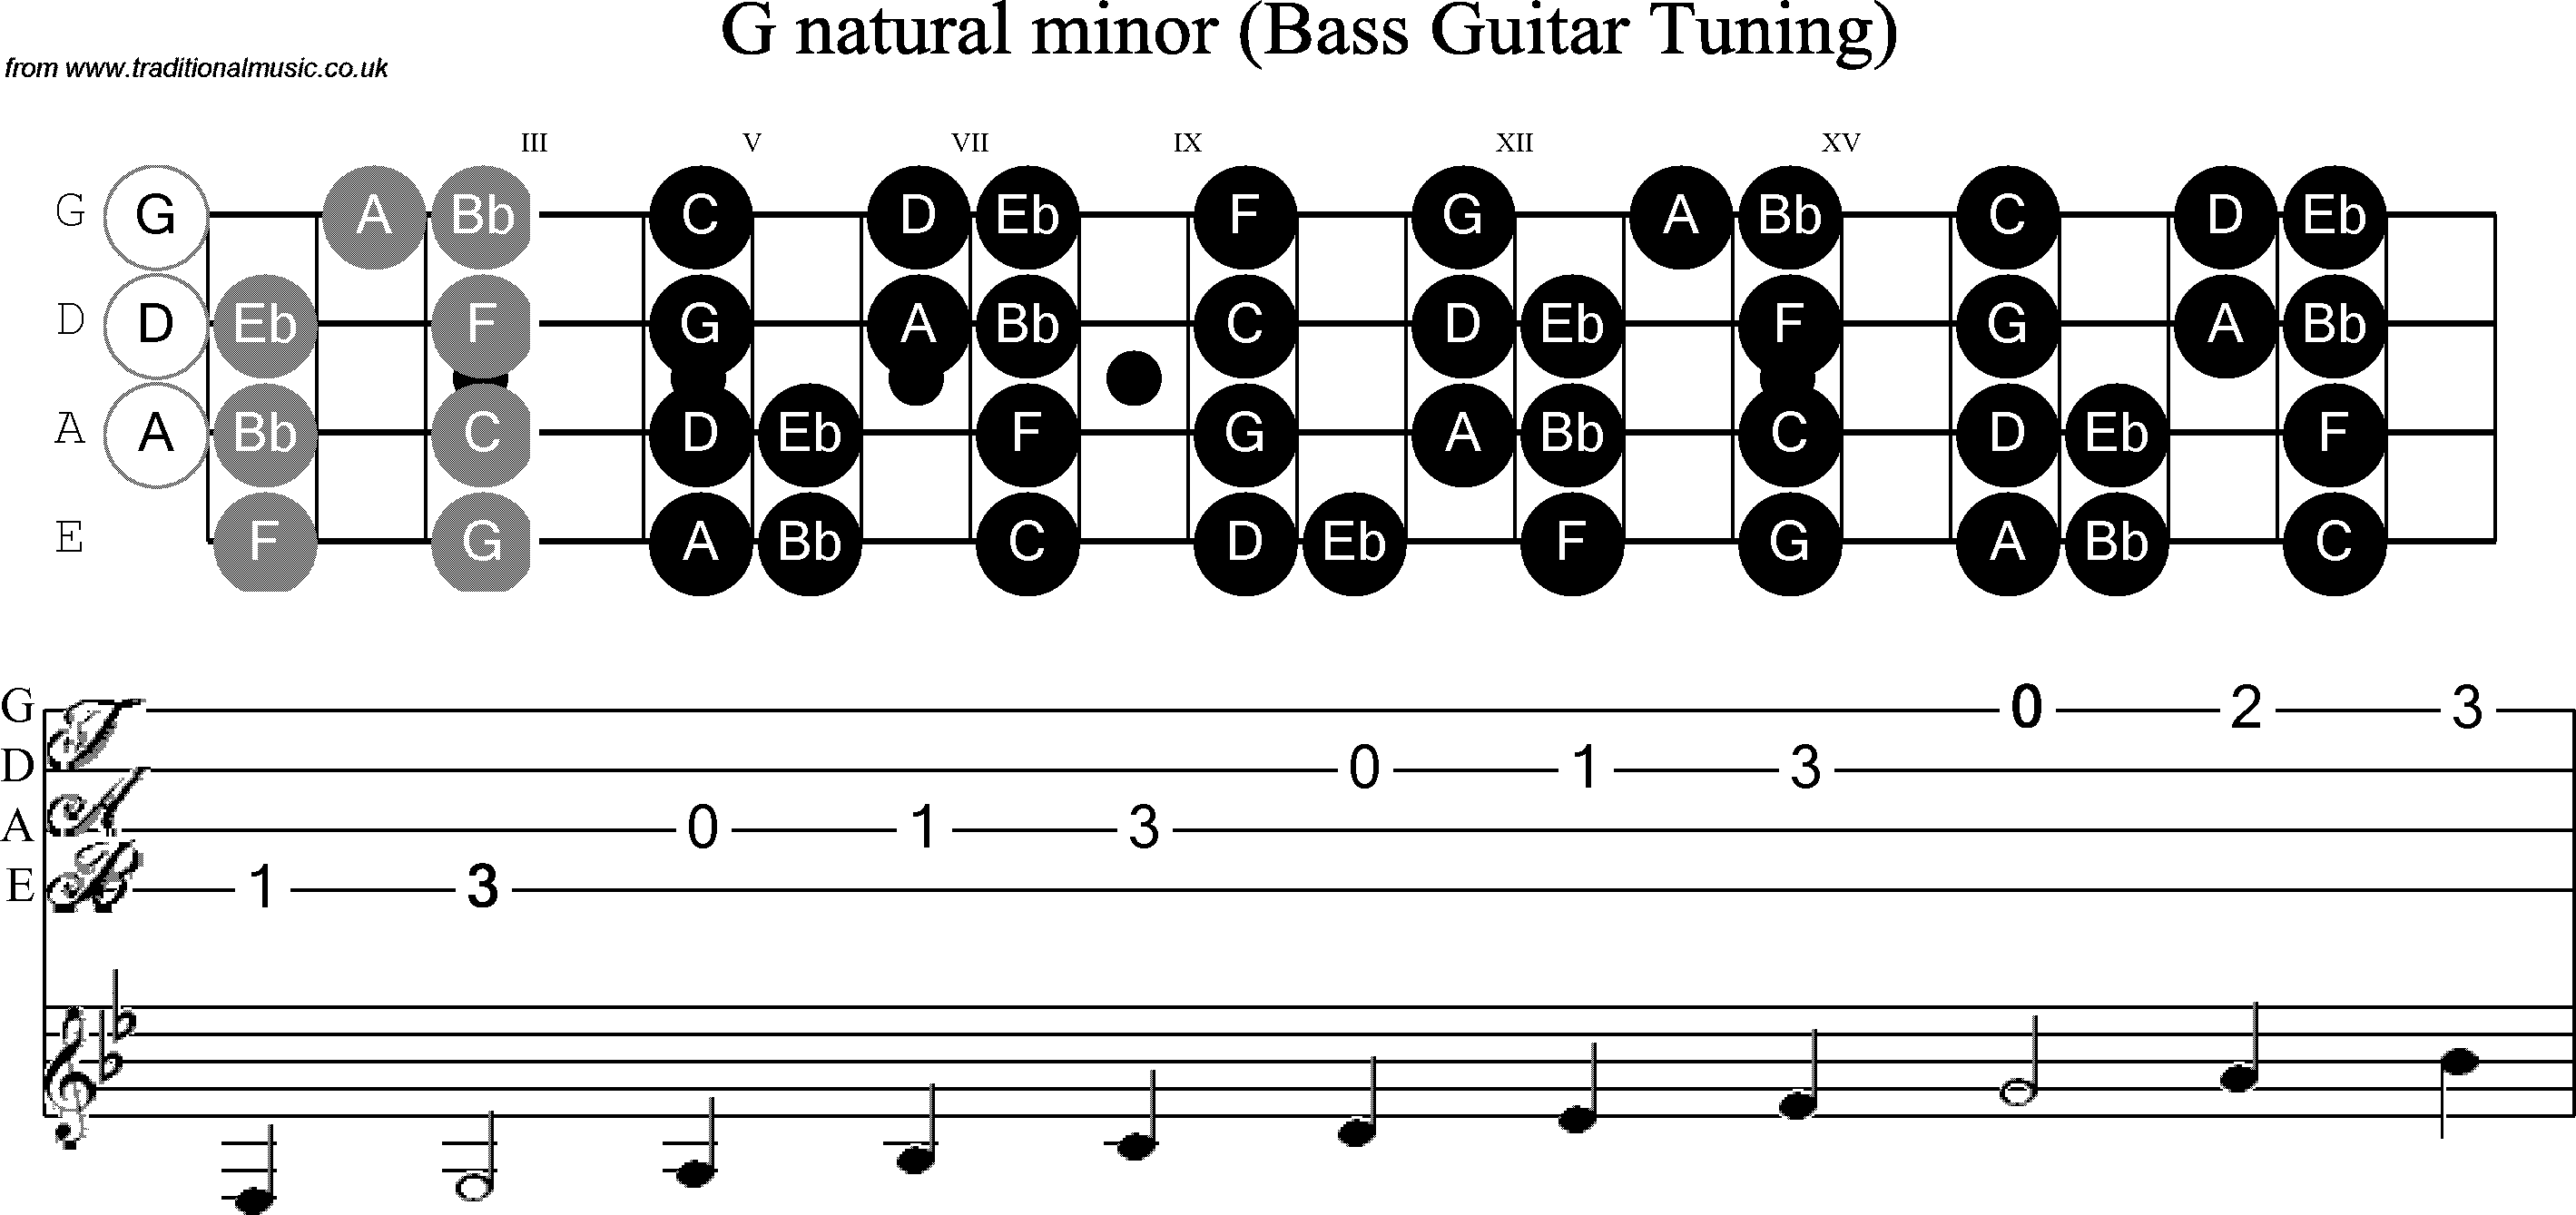 Note that in some cases it may be possible to play the notes in the